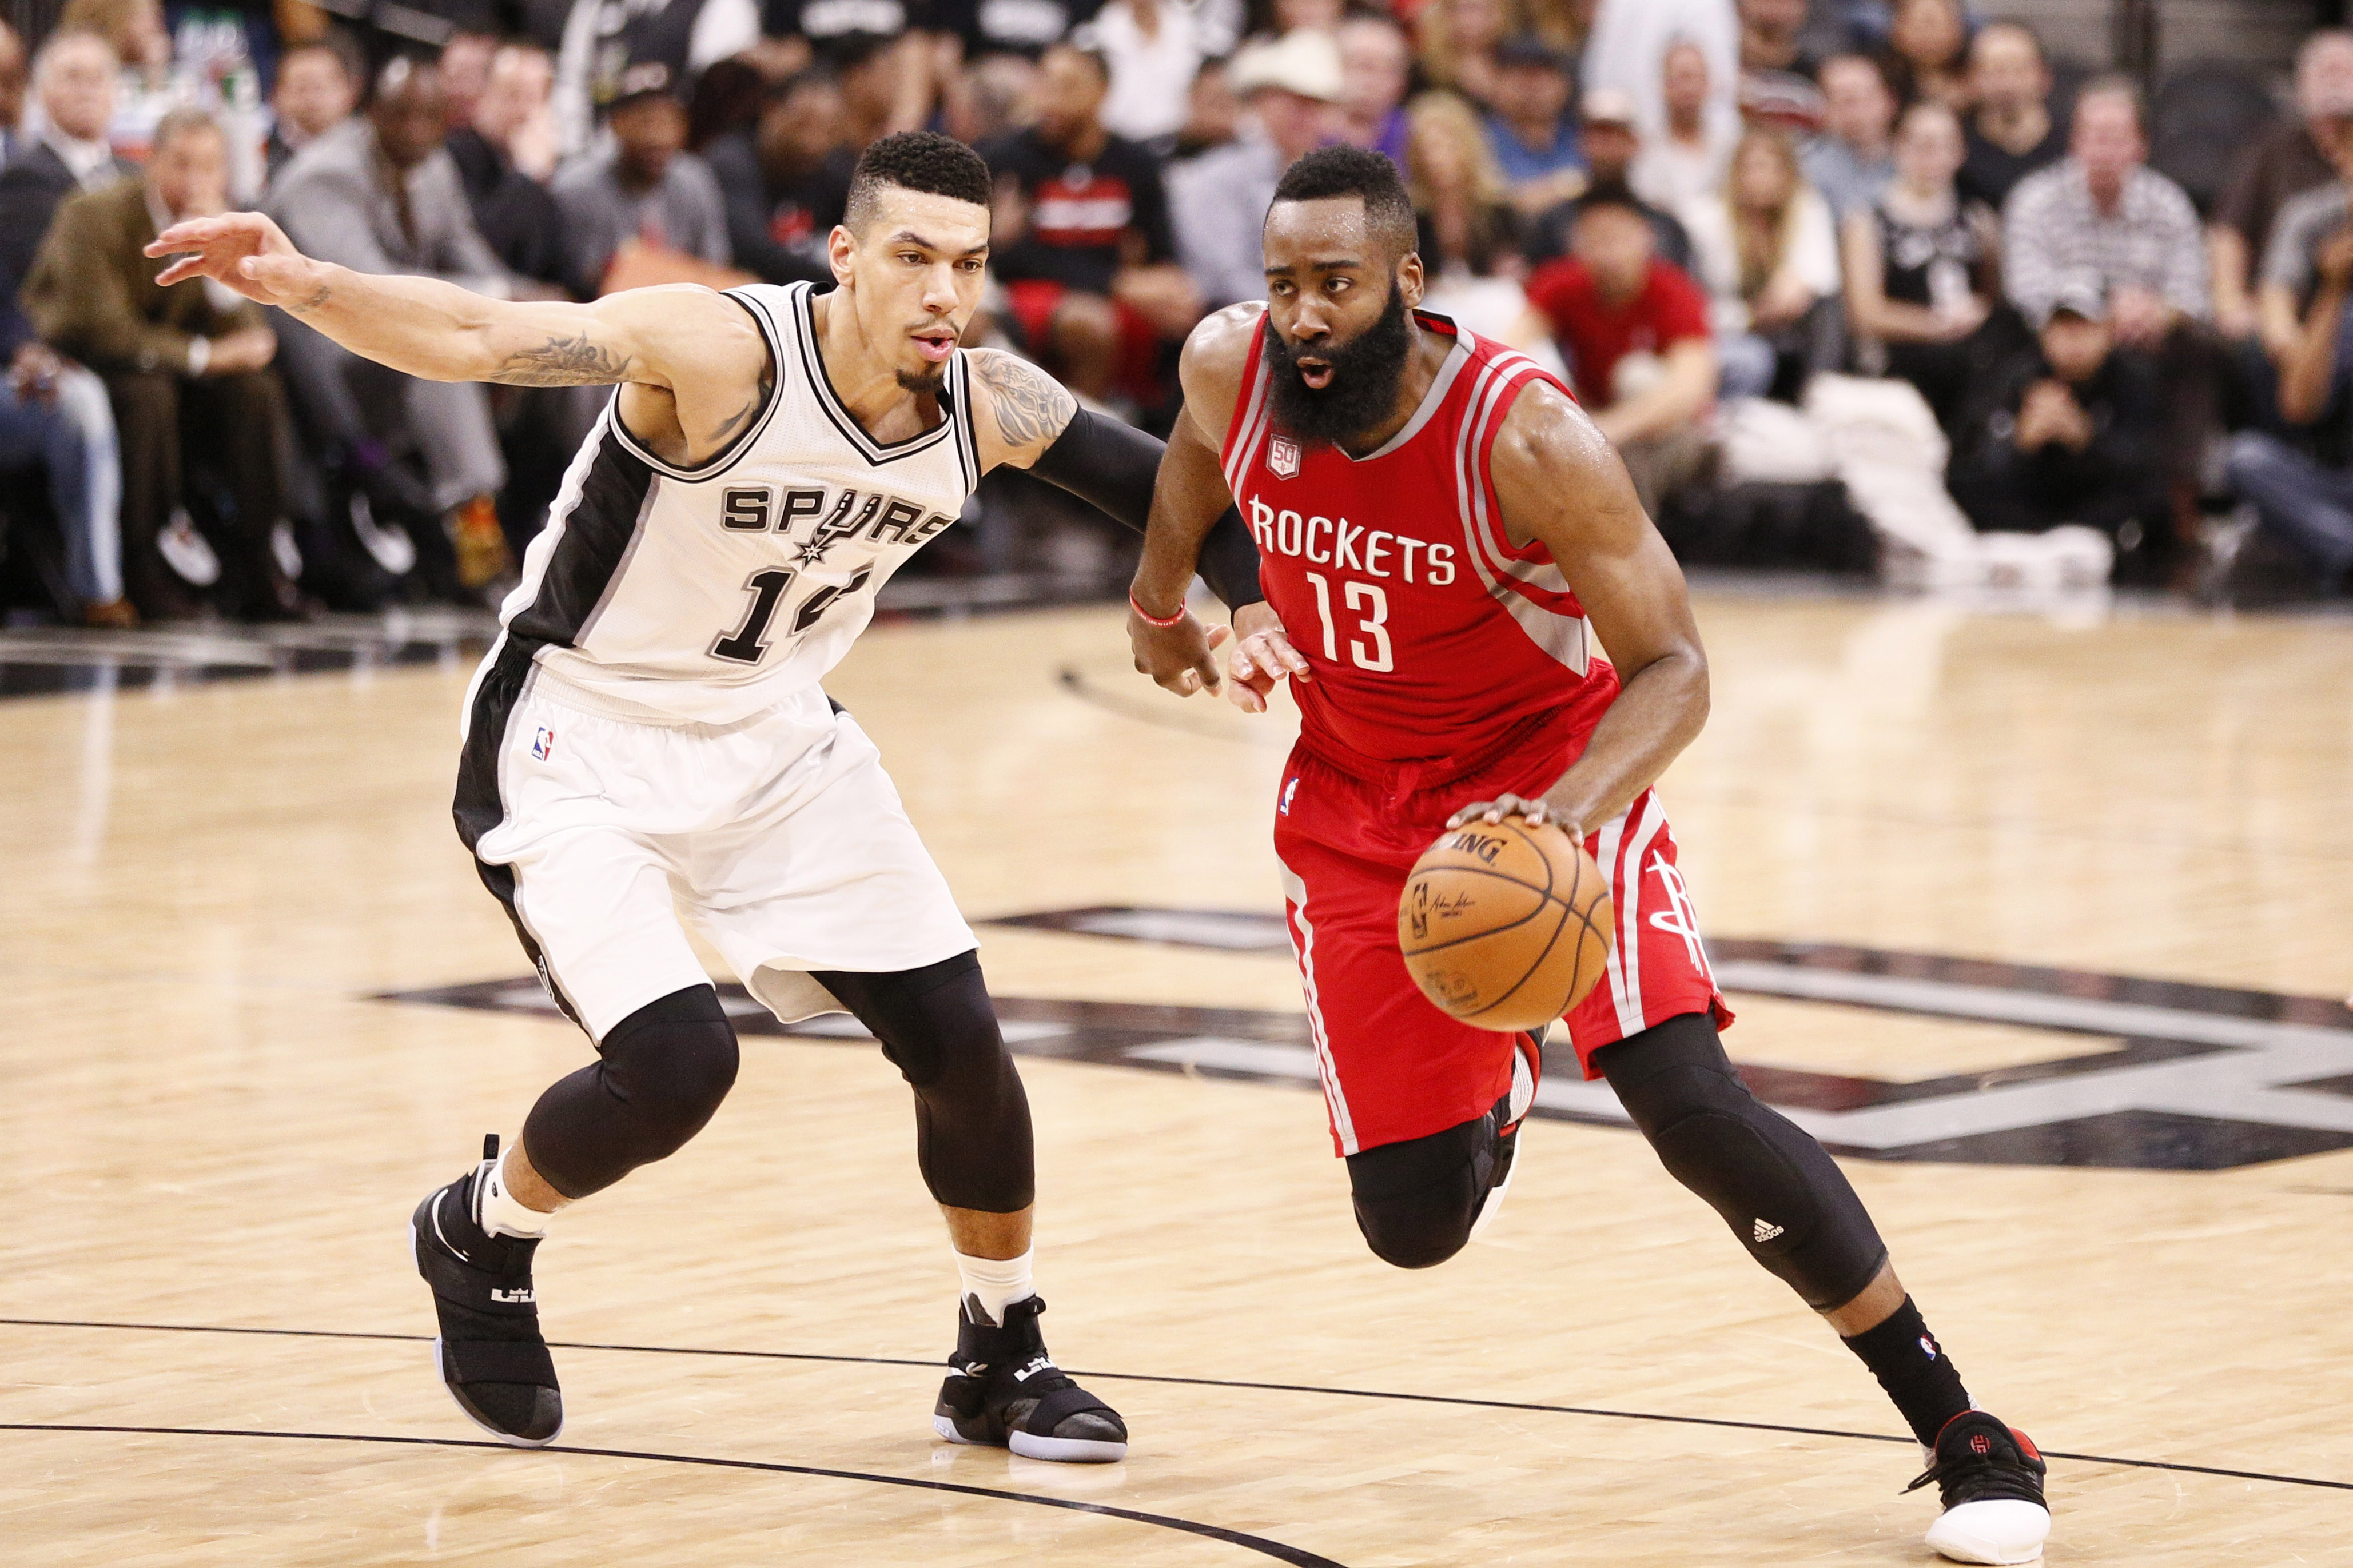 Houston rockets nba rumors - Mar 6 2017 San Antonio Tx Usa Houston Rockets Shooting Guard J Harden 13 Drives To The Basket While Guarded By Spurs Shooting Guard D Green 14